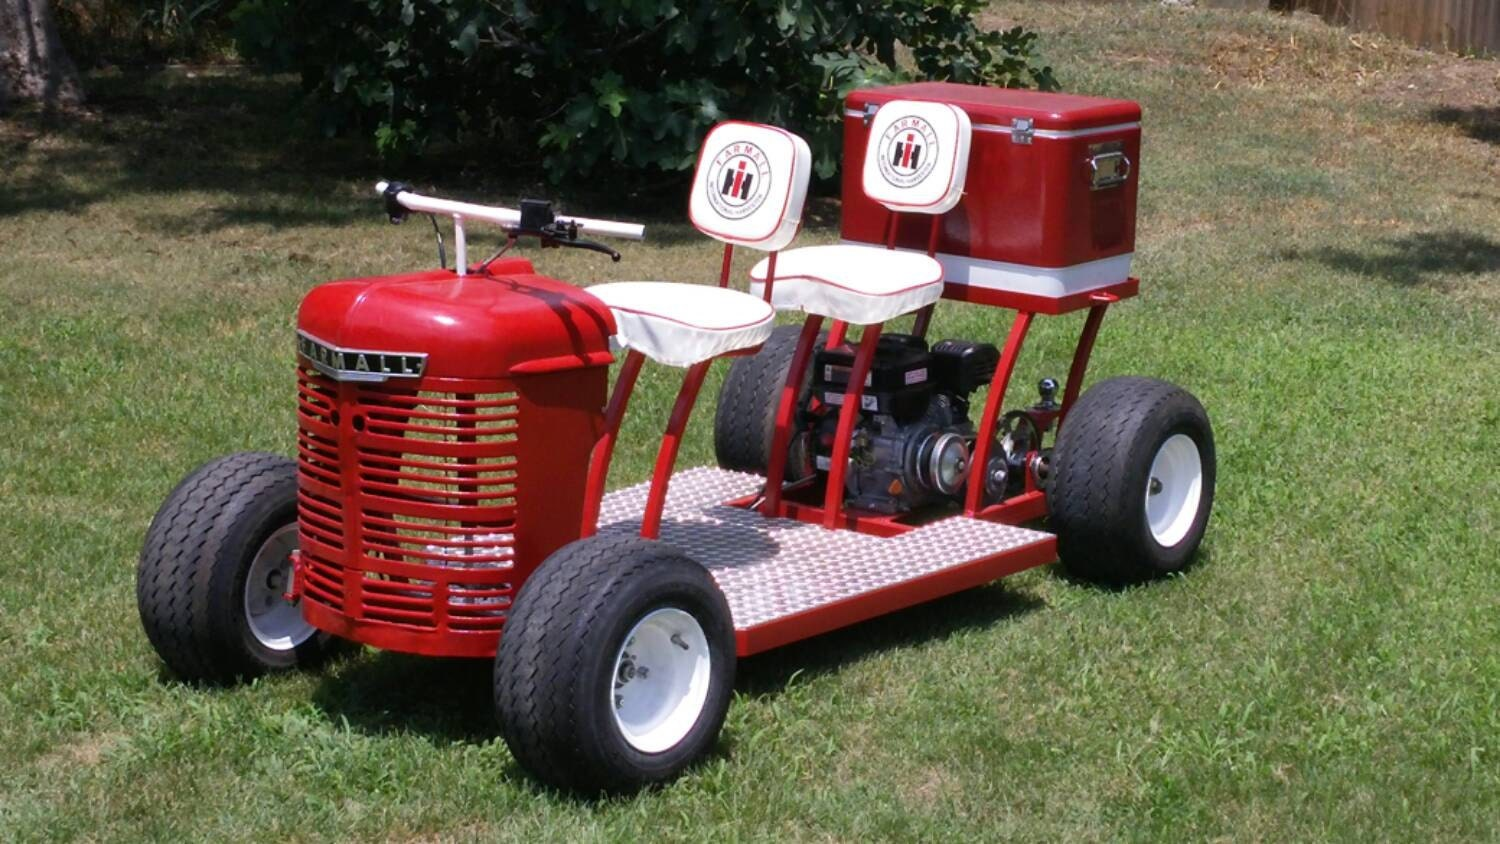 Farmall Barstool Racer Kart ON SALE : ilfullxfull882912683qzfc from www.etsy.com size 1500 x 844 jpeg 266kB